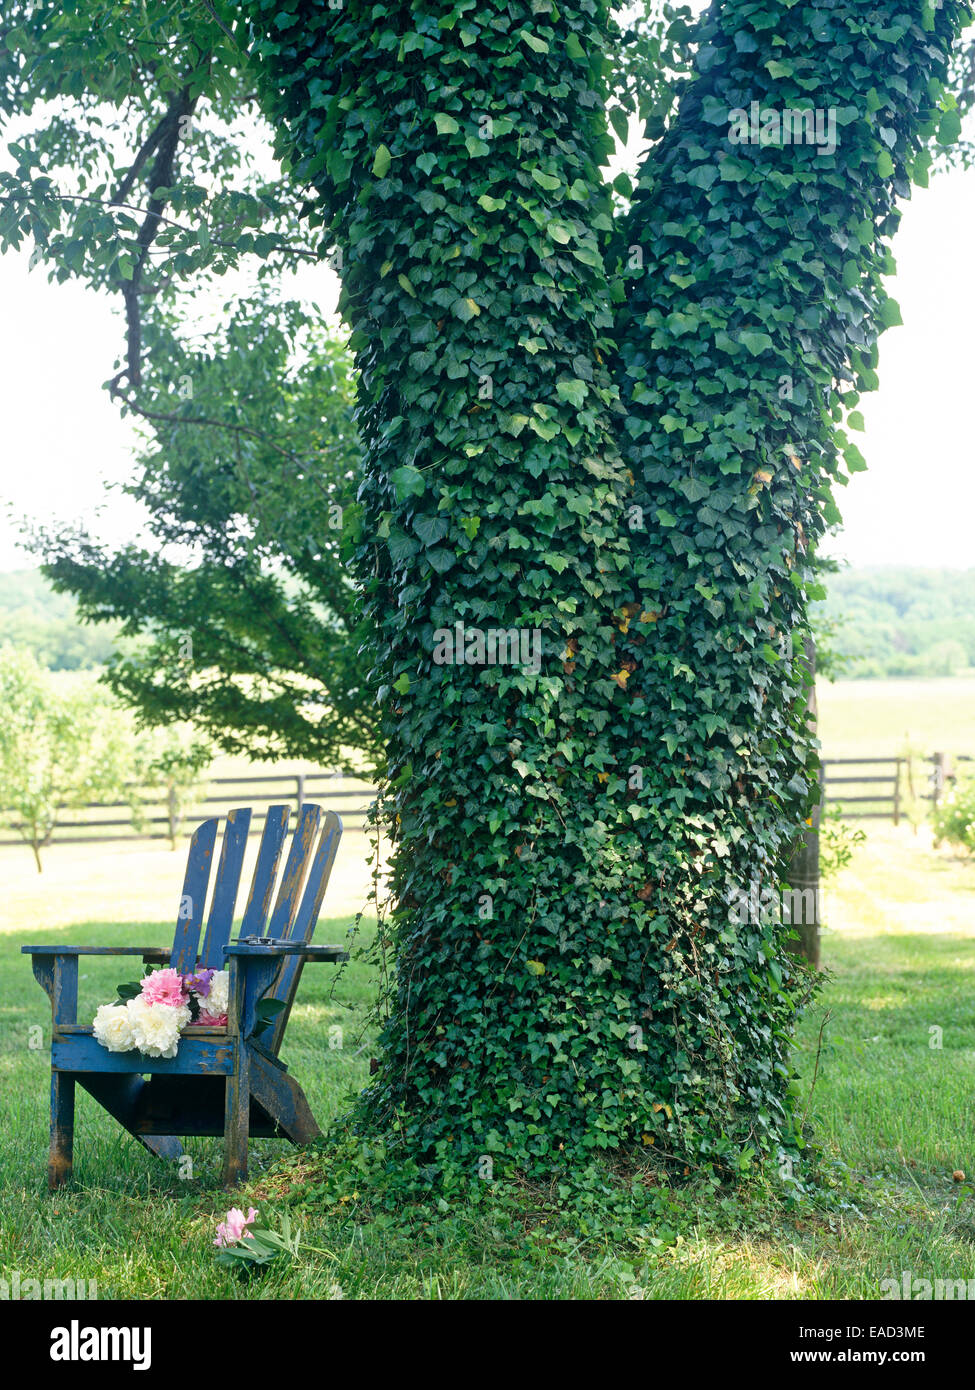 ivy covered tree and adirondeck chair with cut peonies - Stock Image